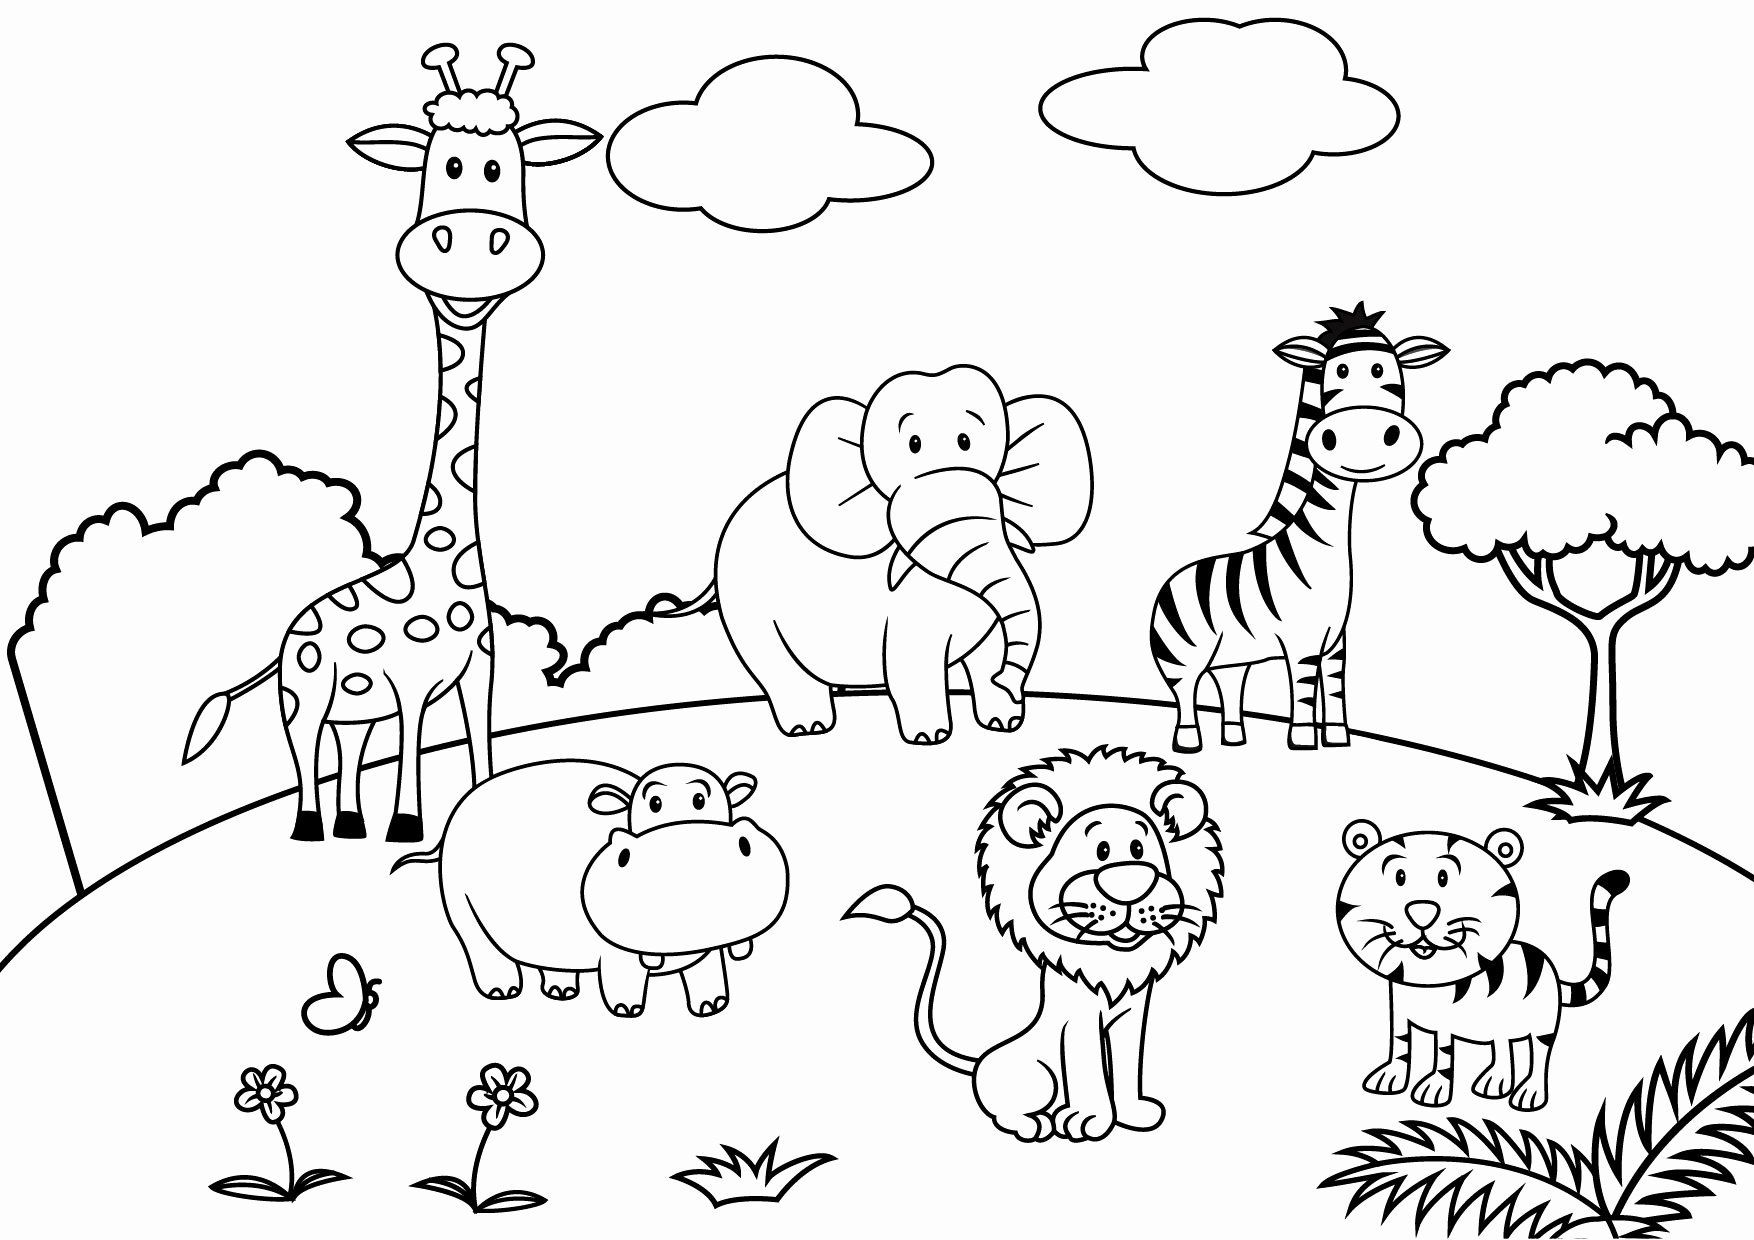 Cartoons Coloring Pages To Print In